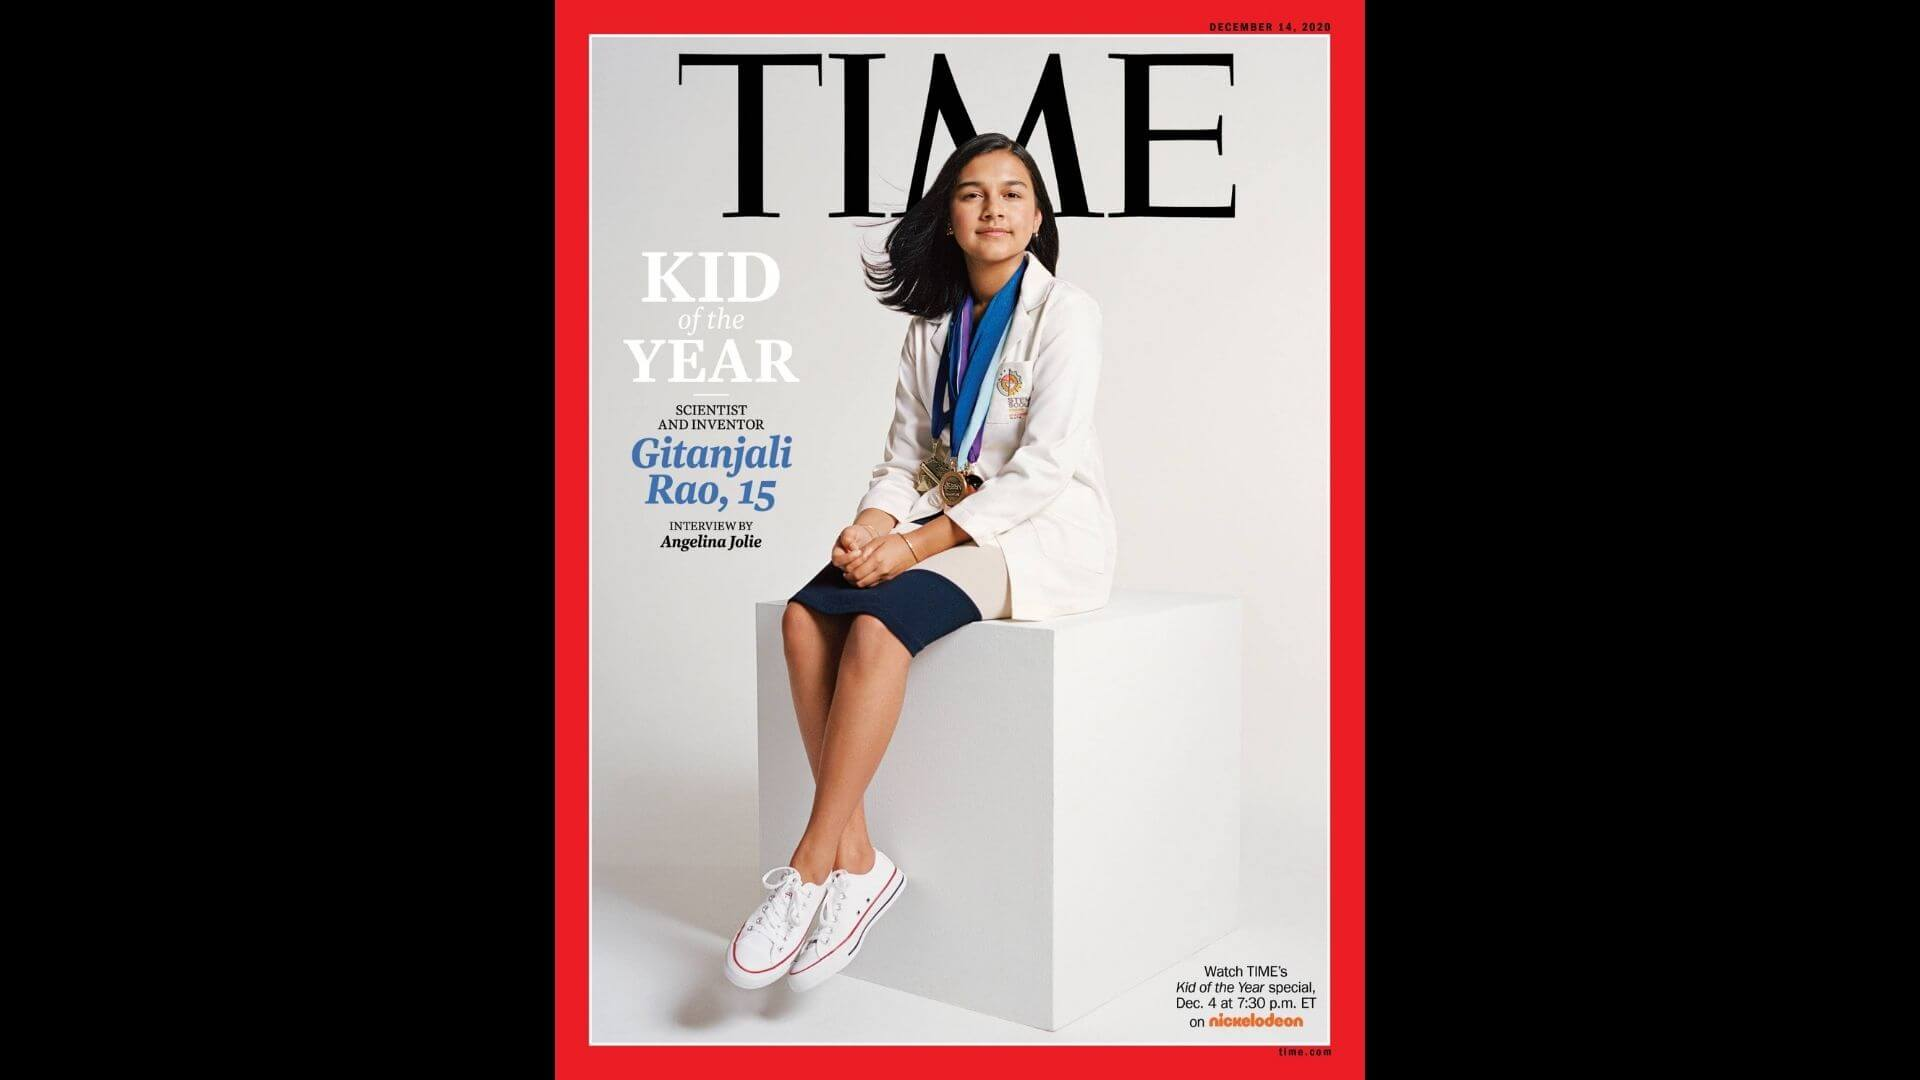 Time Kid of the Year Gitanjali Rao posing in a lab coat with medals